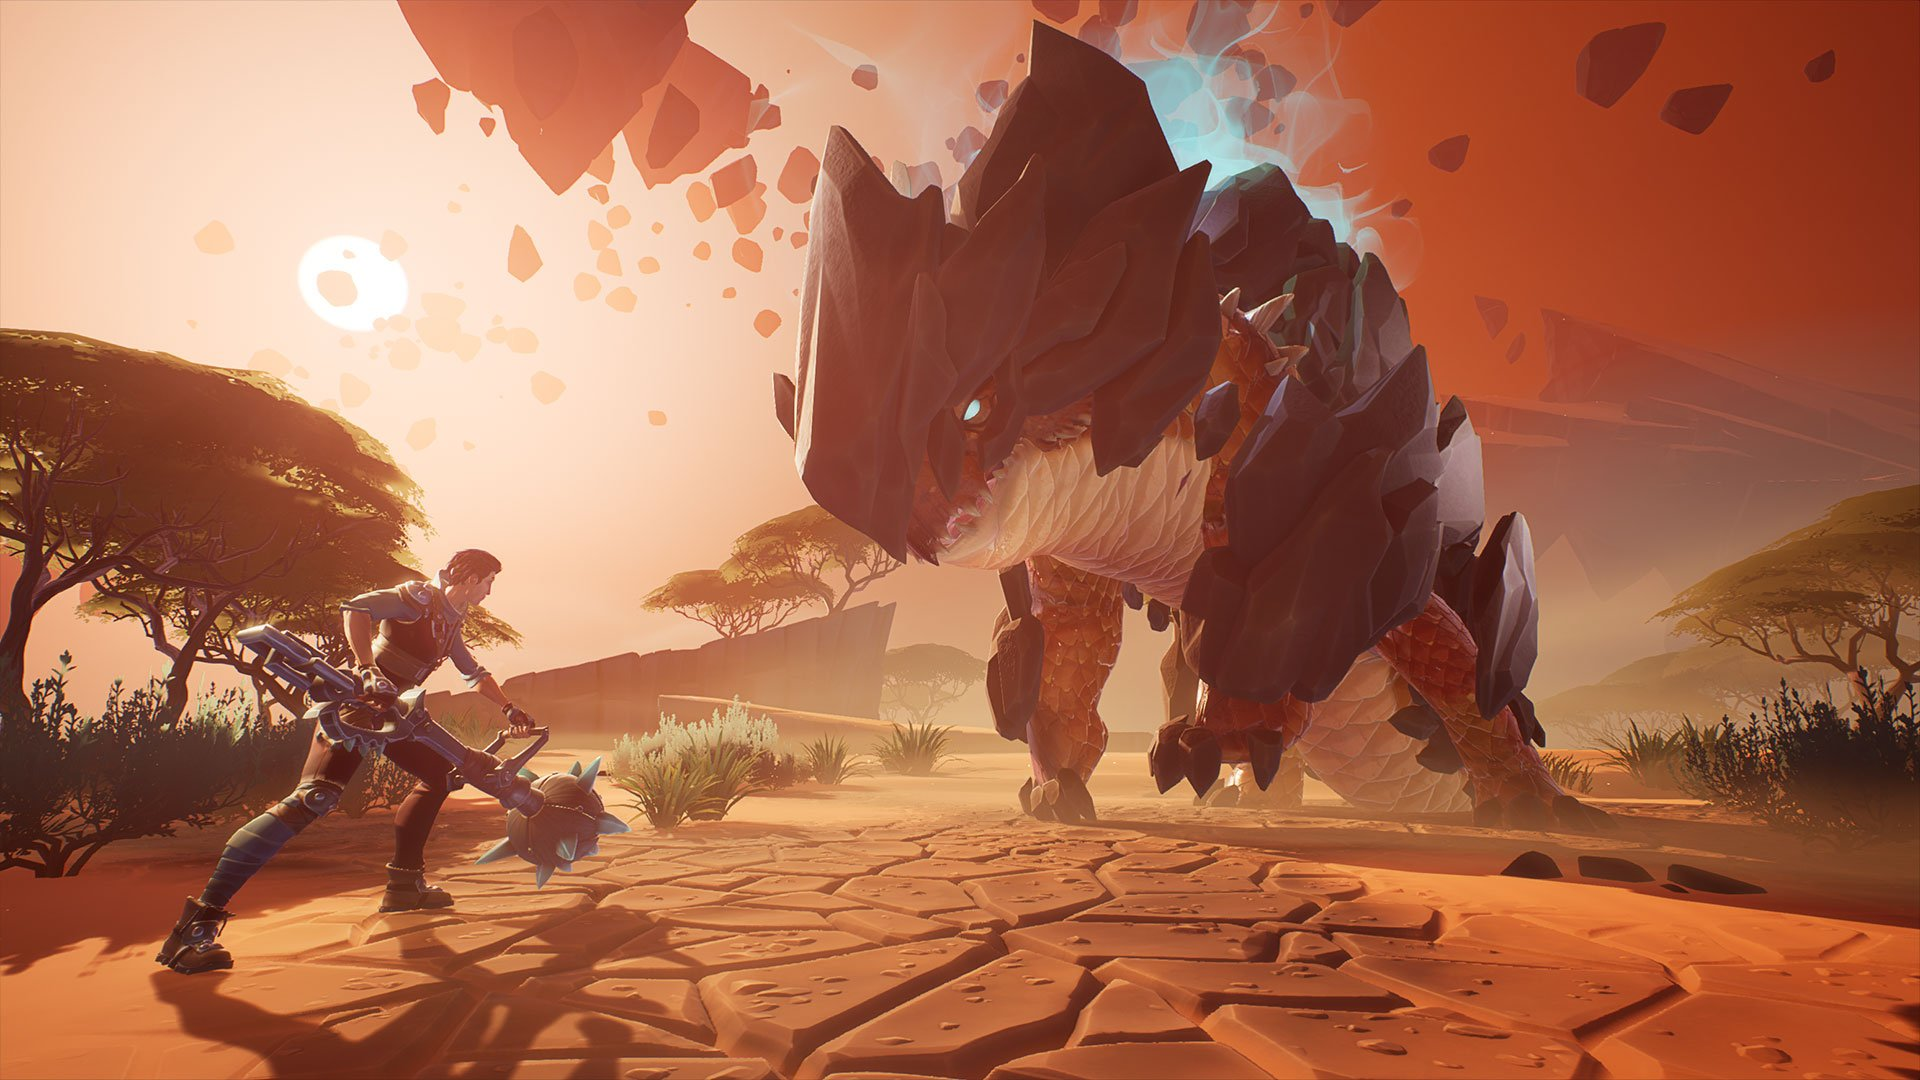 Dauntless release date for PC and consoles announced